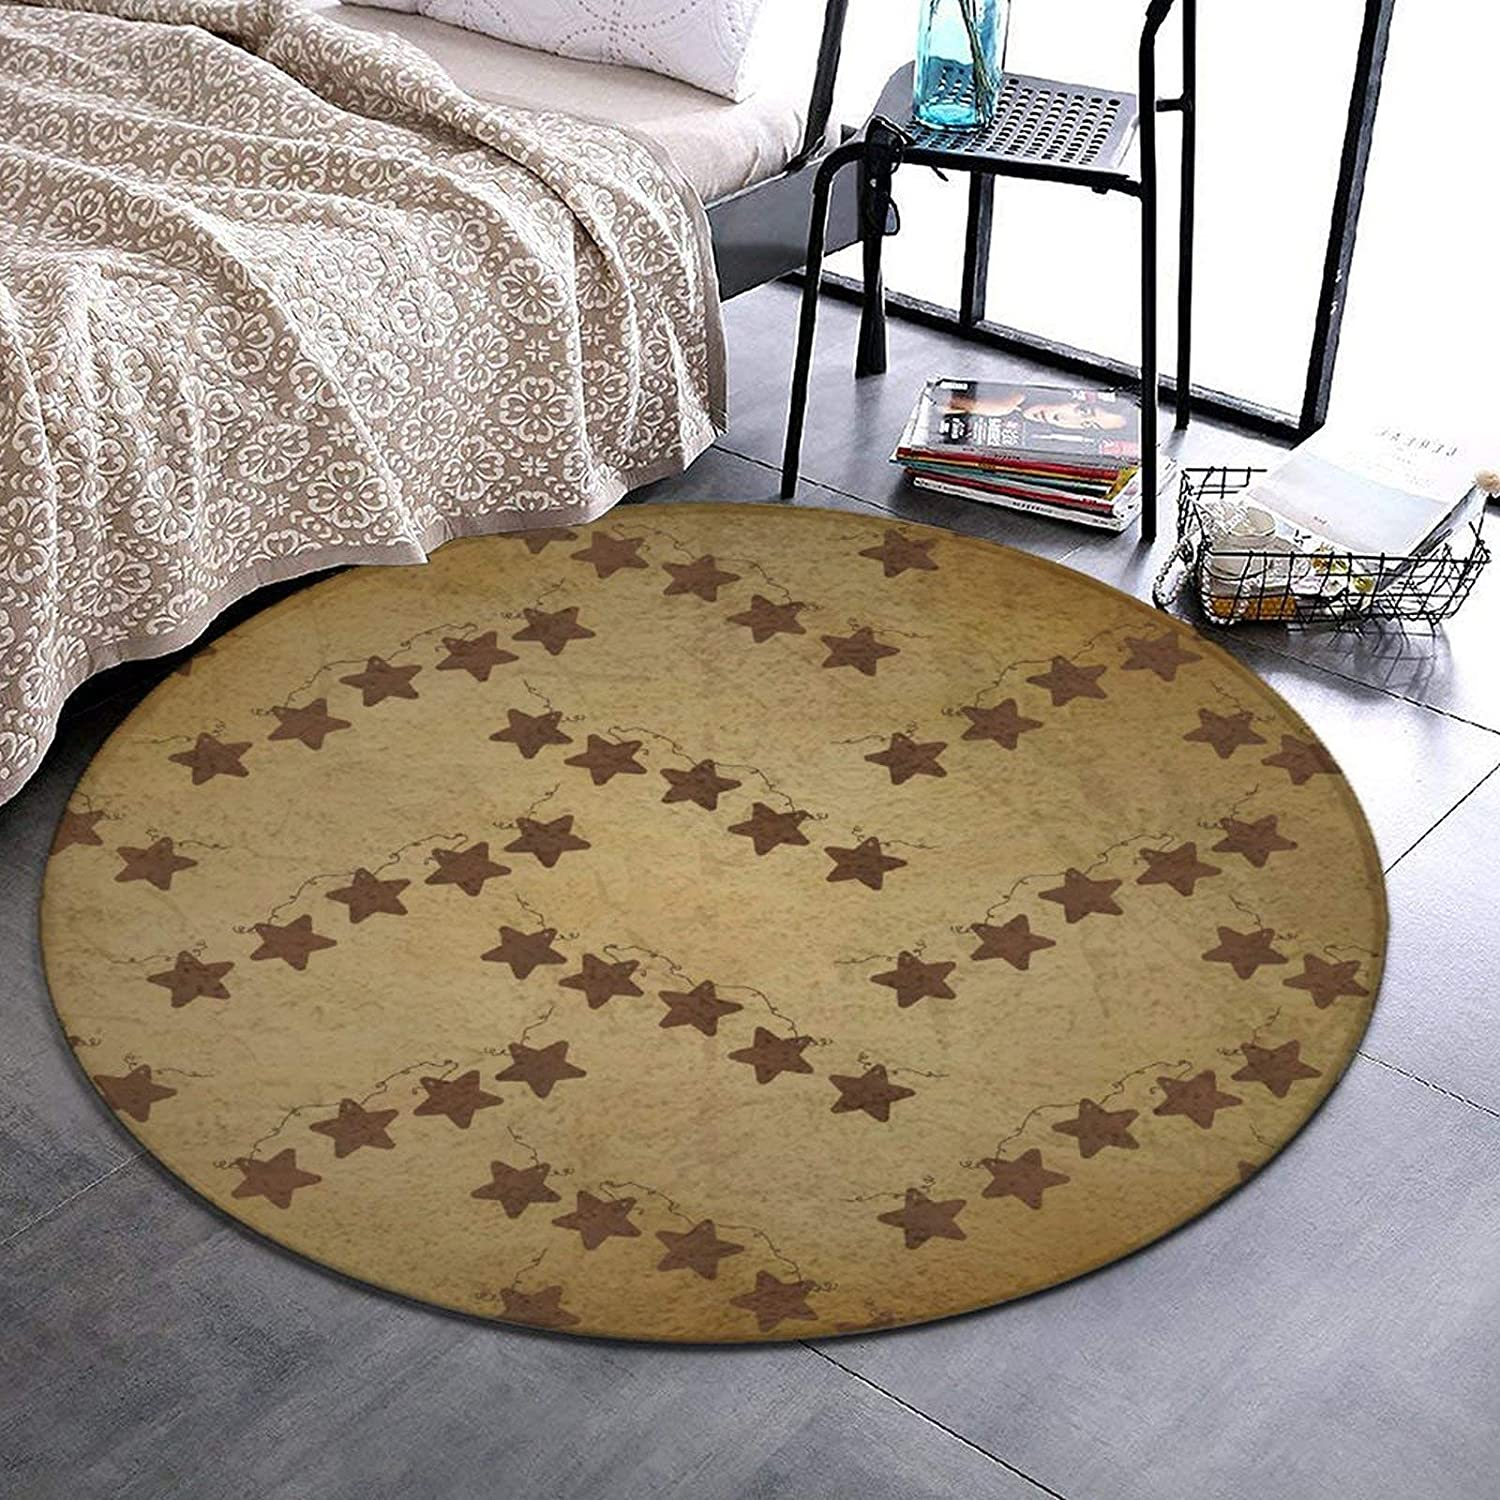 Round Area Rug Brown Vintage Rusty Colorado Springs Mall New Shipping Free Shipping Country Stars Rust Primitive